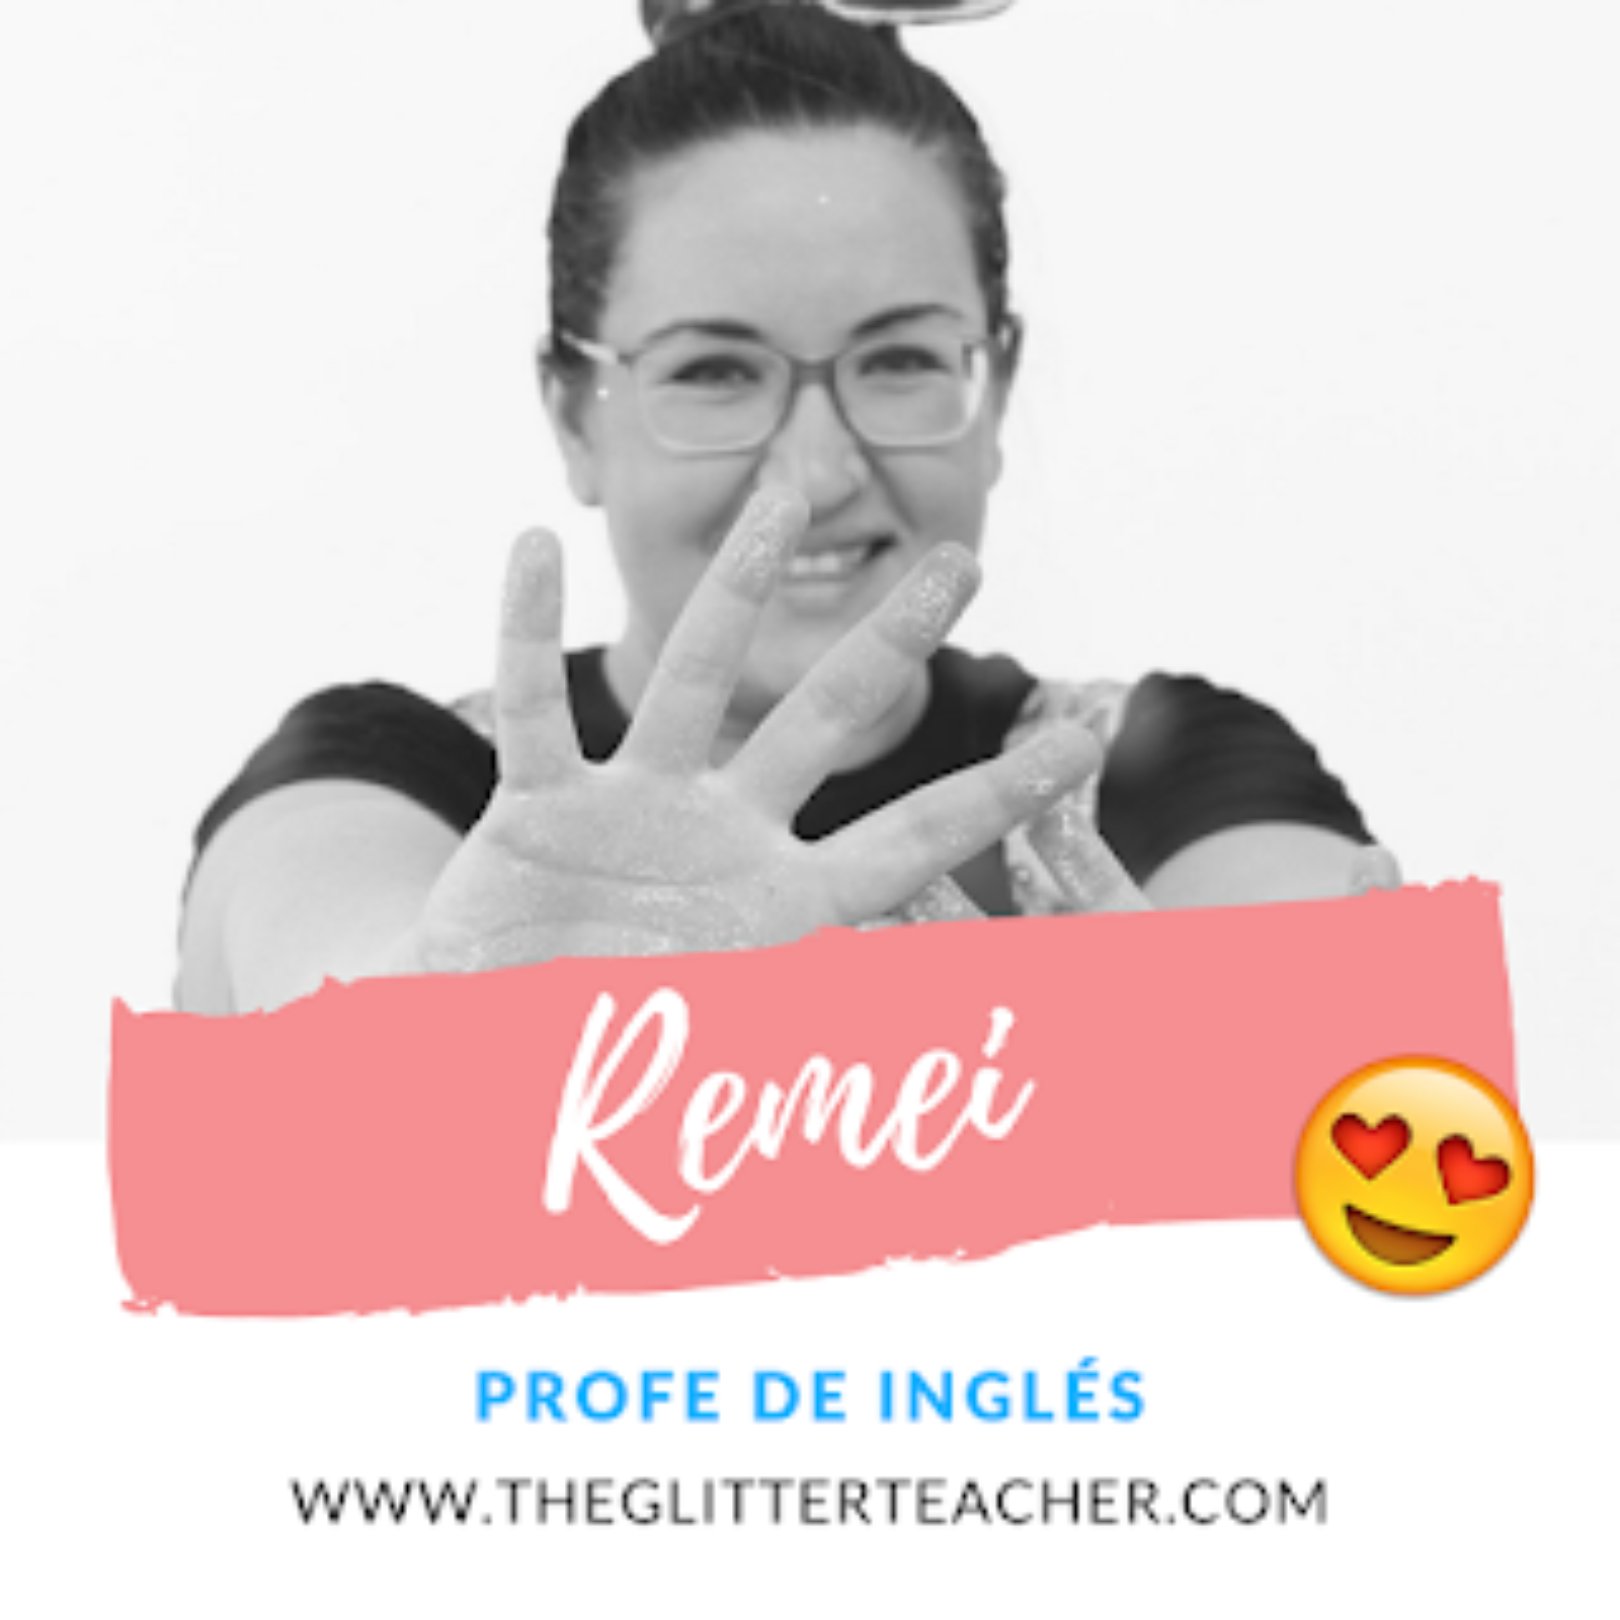 The glitter teacher English teacher